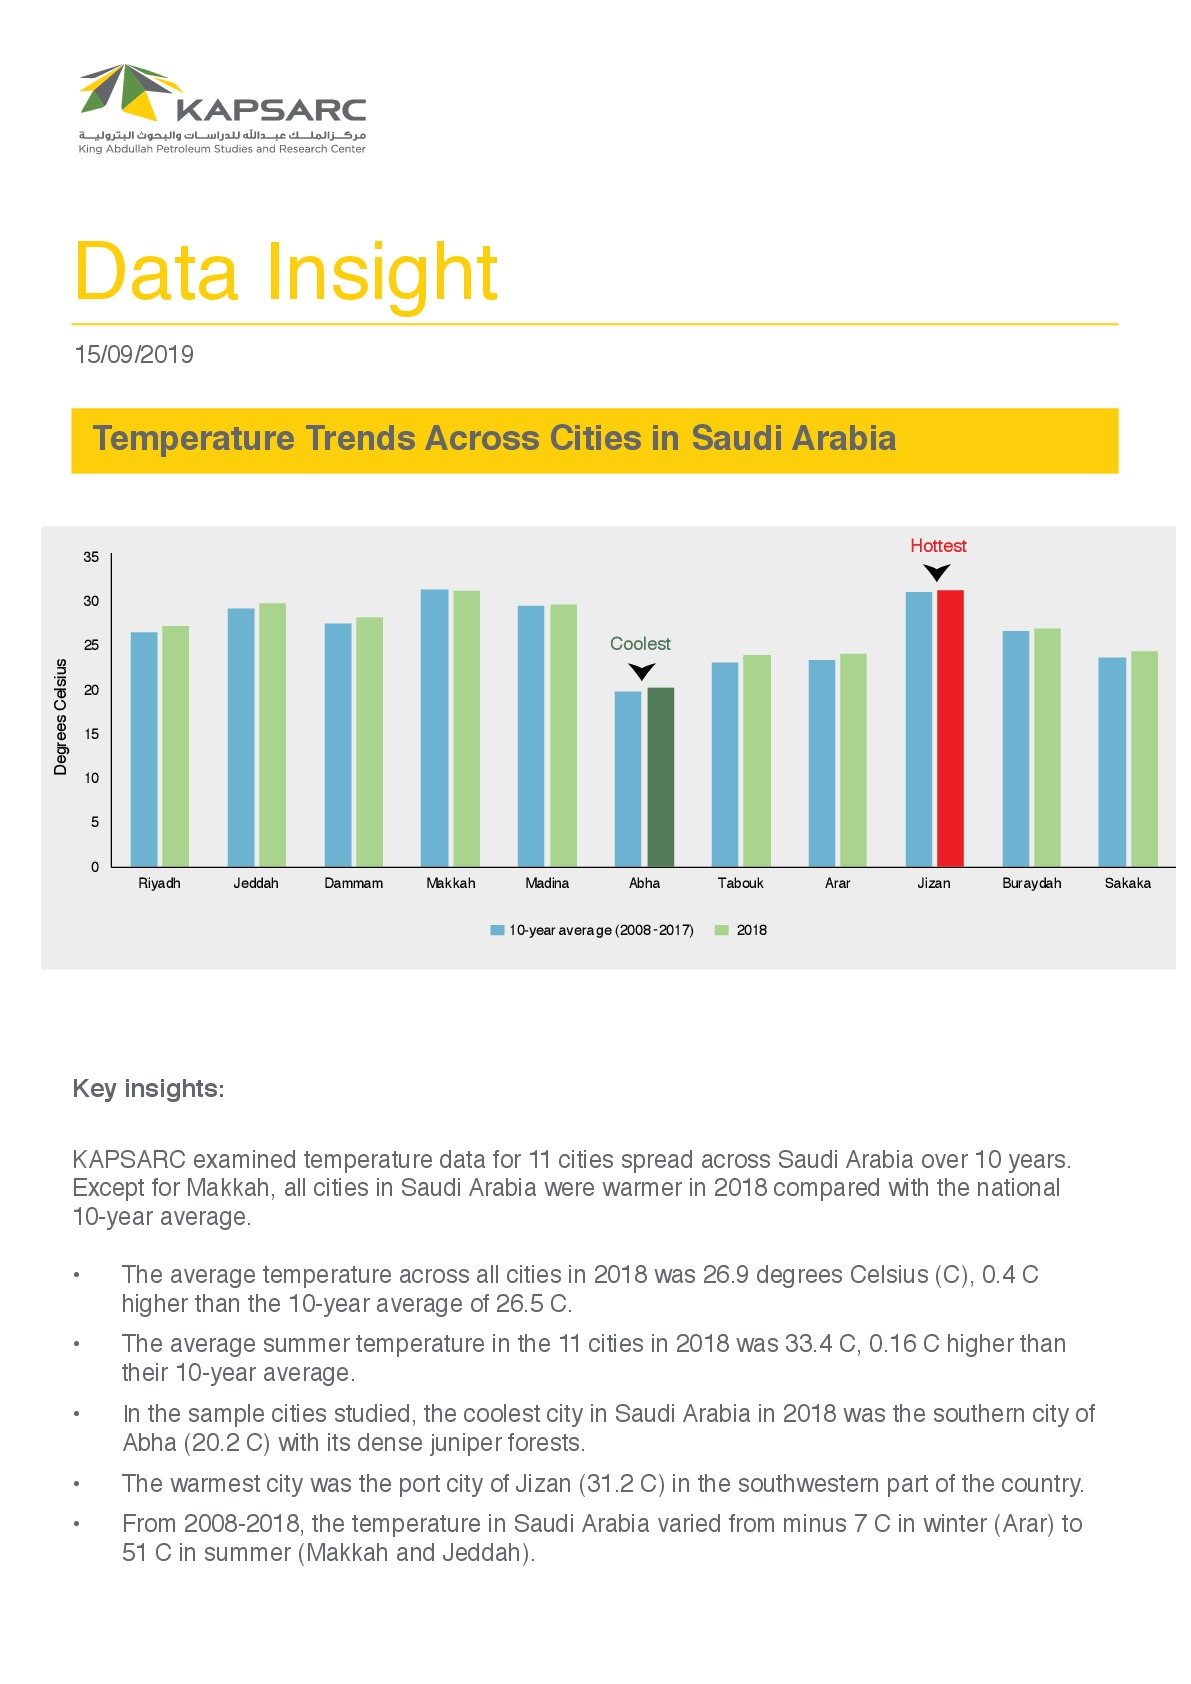 Temperature Trends Across Cities in Saudi Arabia